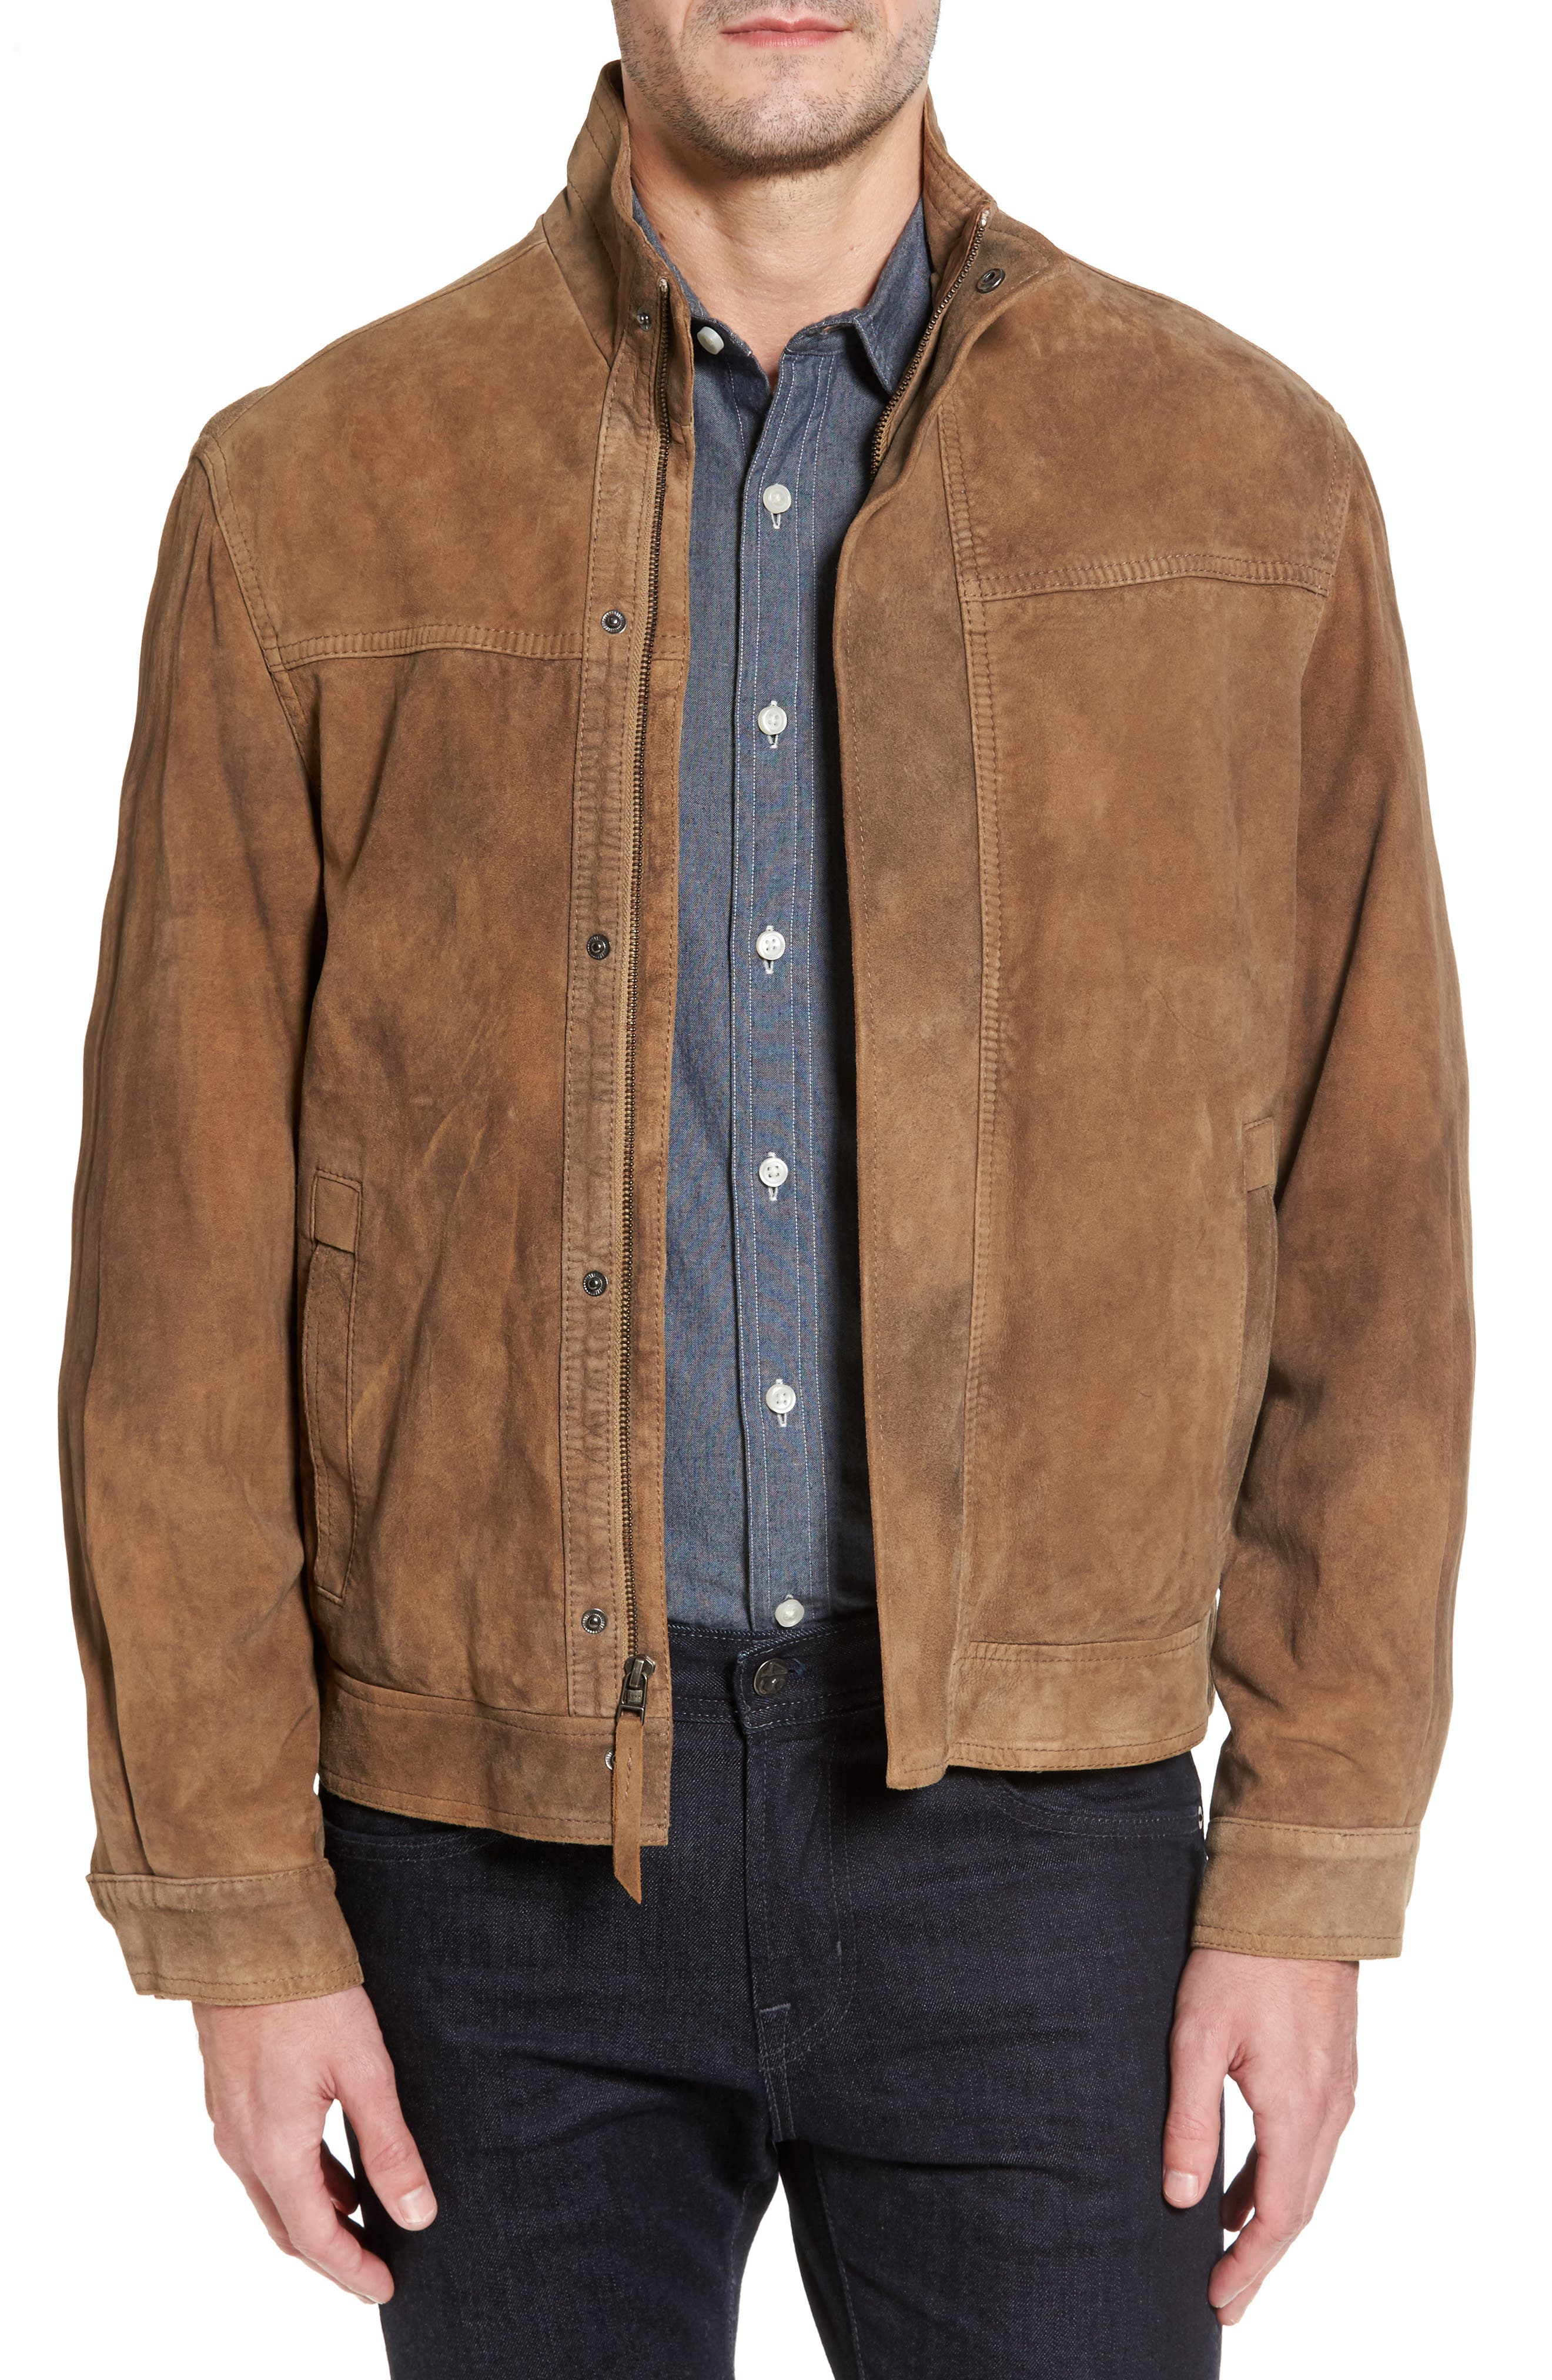 Alternate Image 1 Selected - Missani Le Collezioni Lambskin Suede Jacket